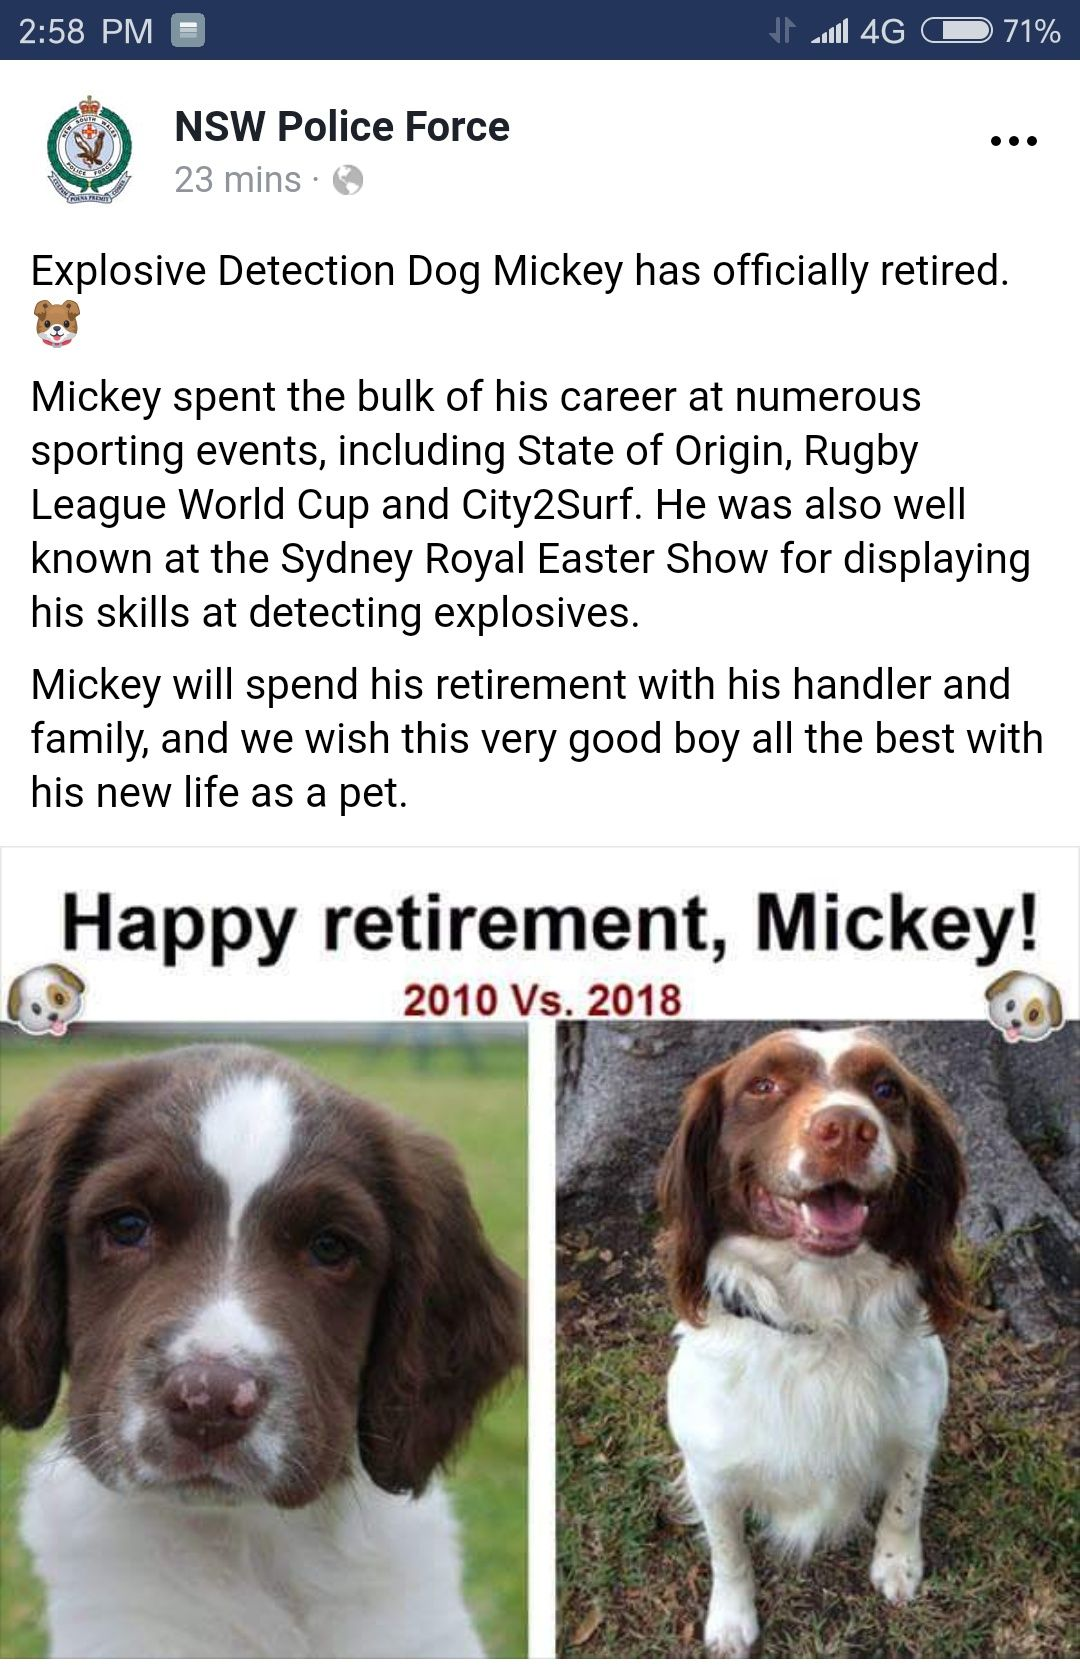 explosive-detection-dog-mickey-has-officially-retired-%f0%9f%90%b6